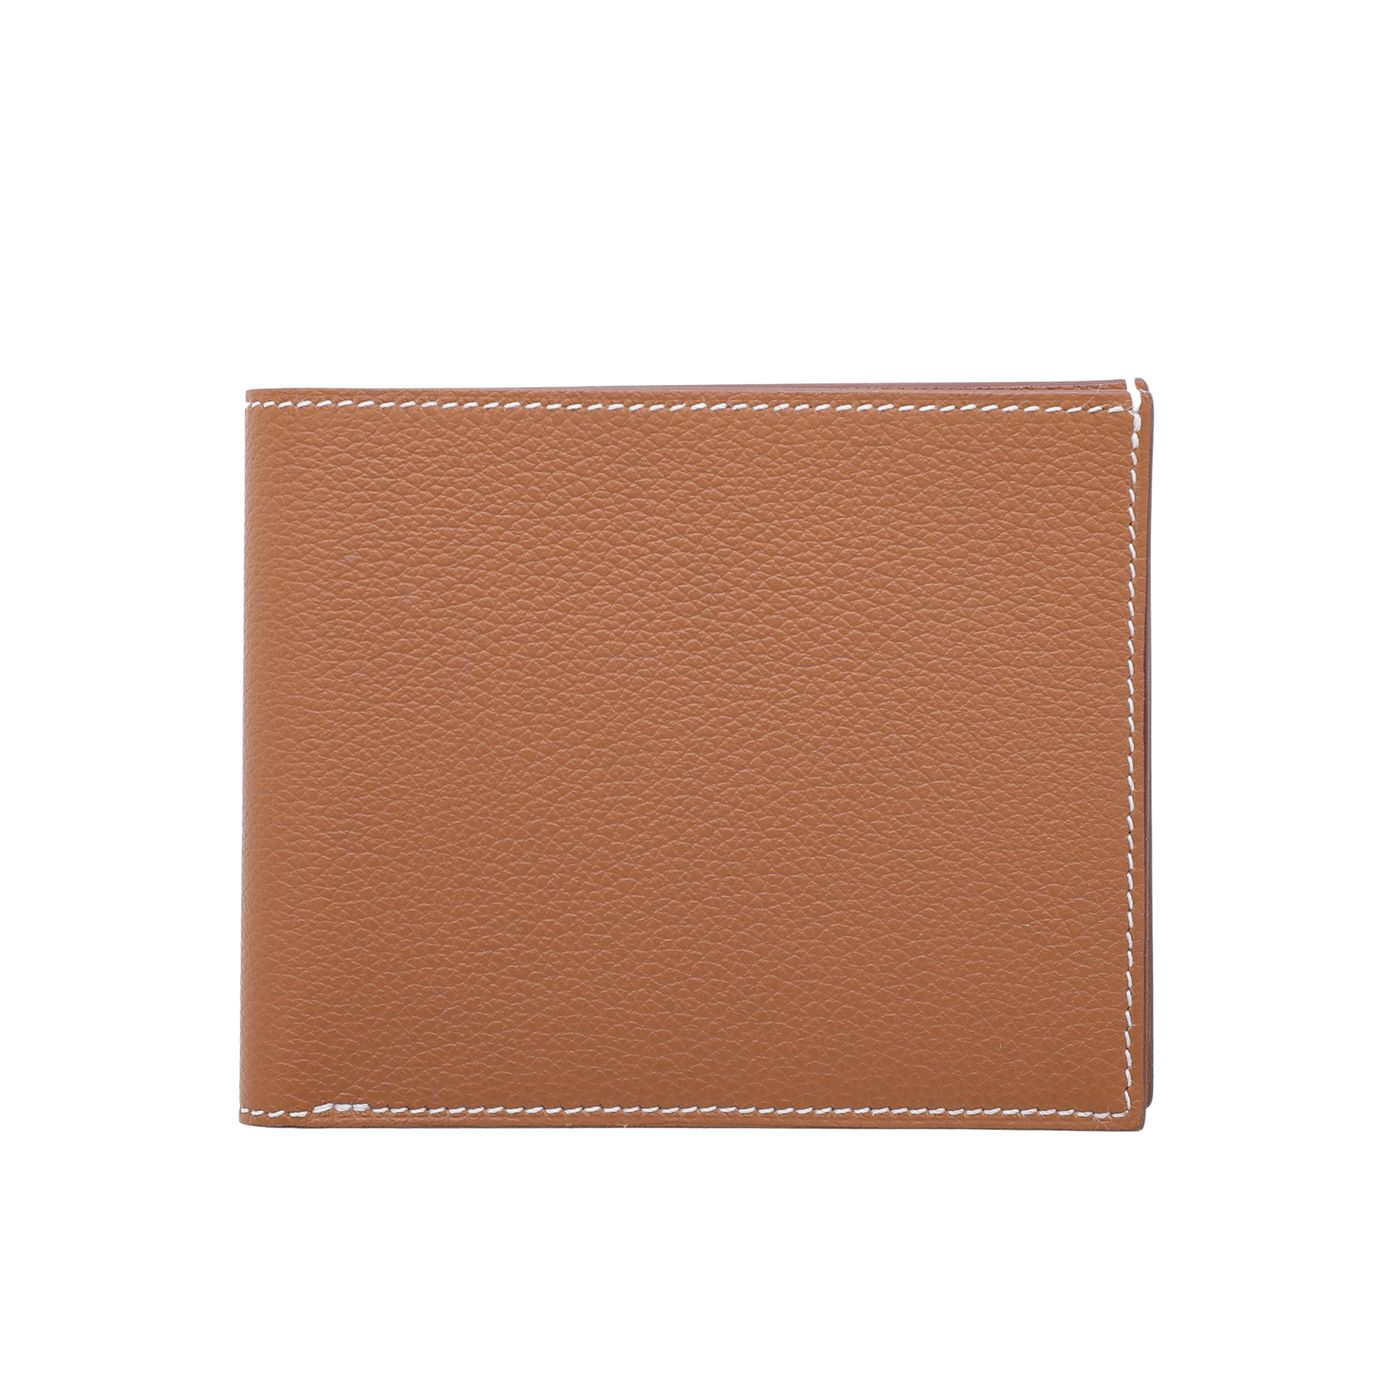 Hermes Gold Citizen Twill Evercolor Compact Wallet